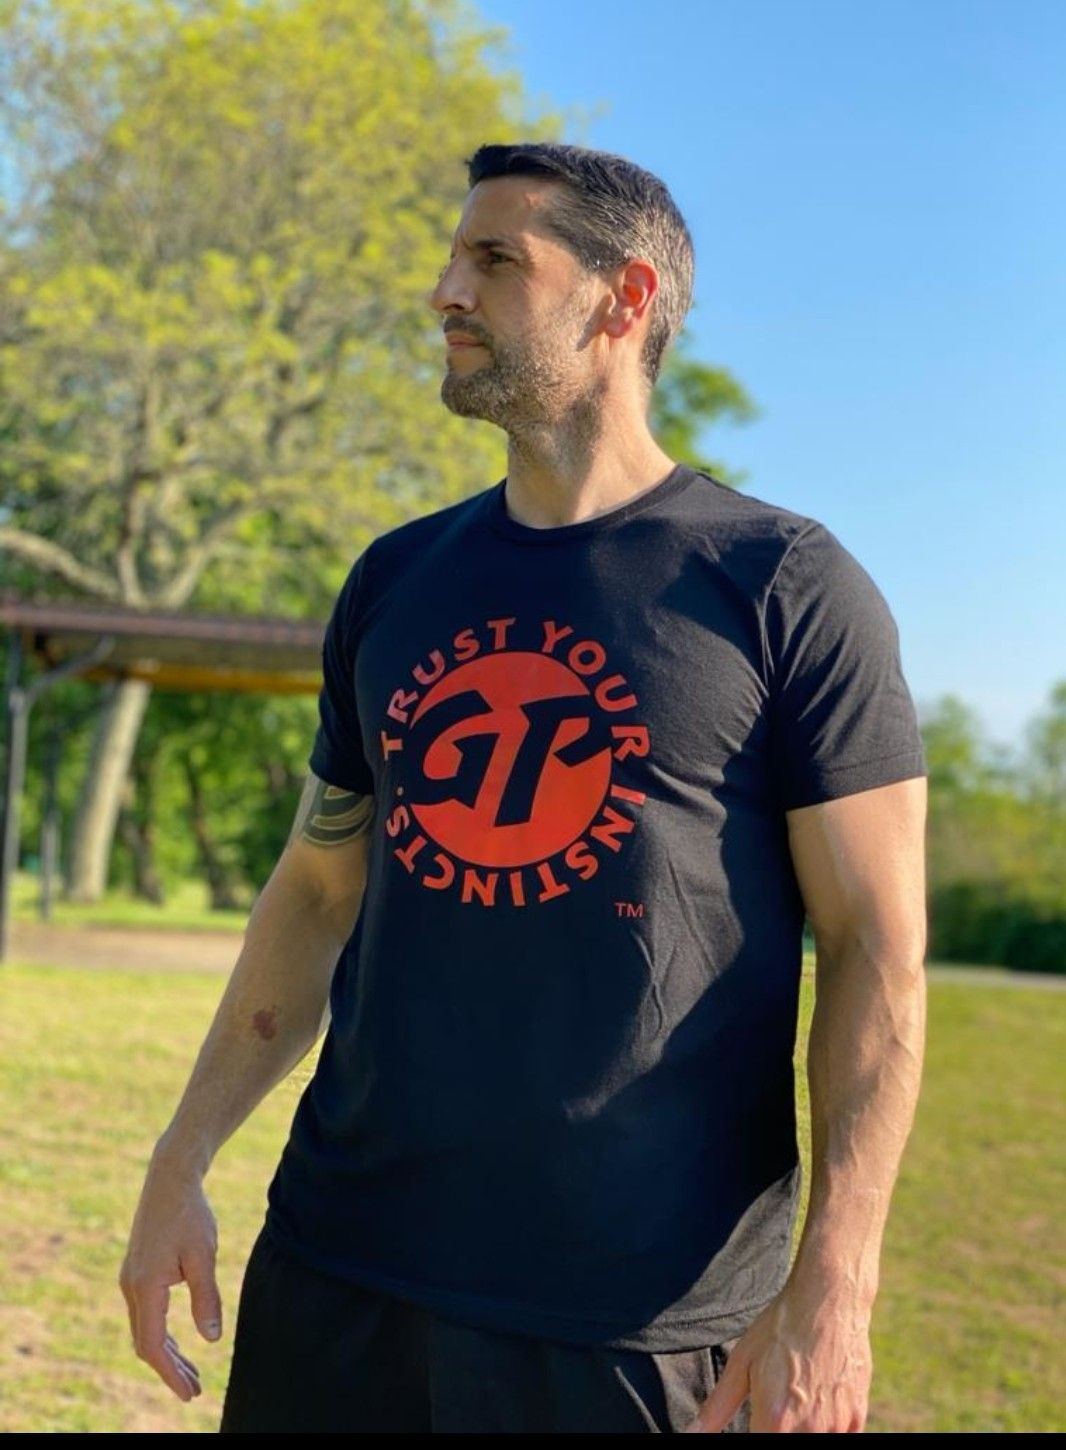 My battle for health & sobriety led me to launch a lifestyle brand